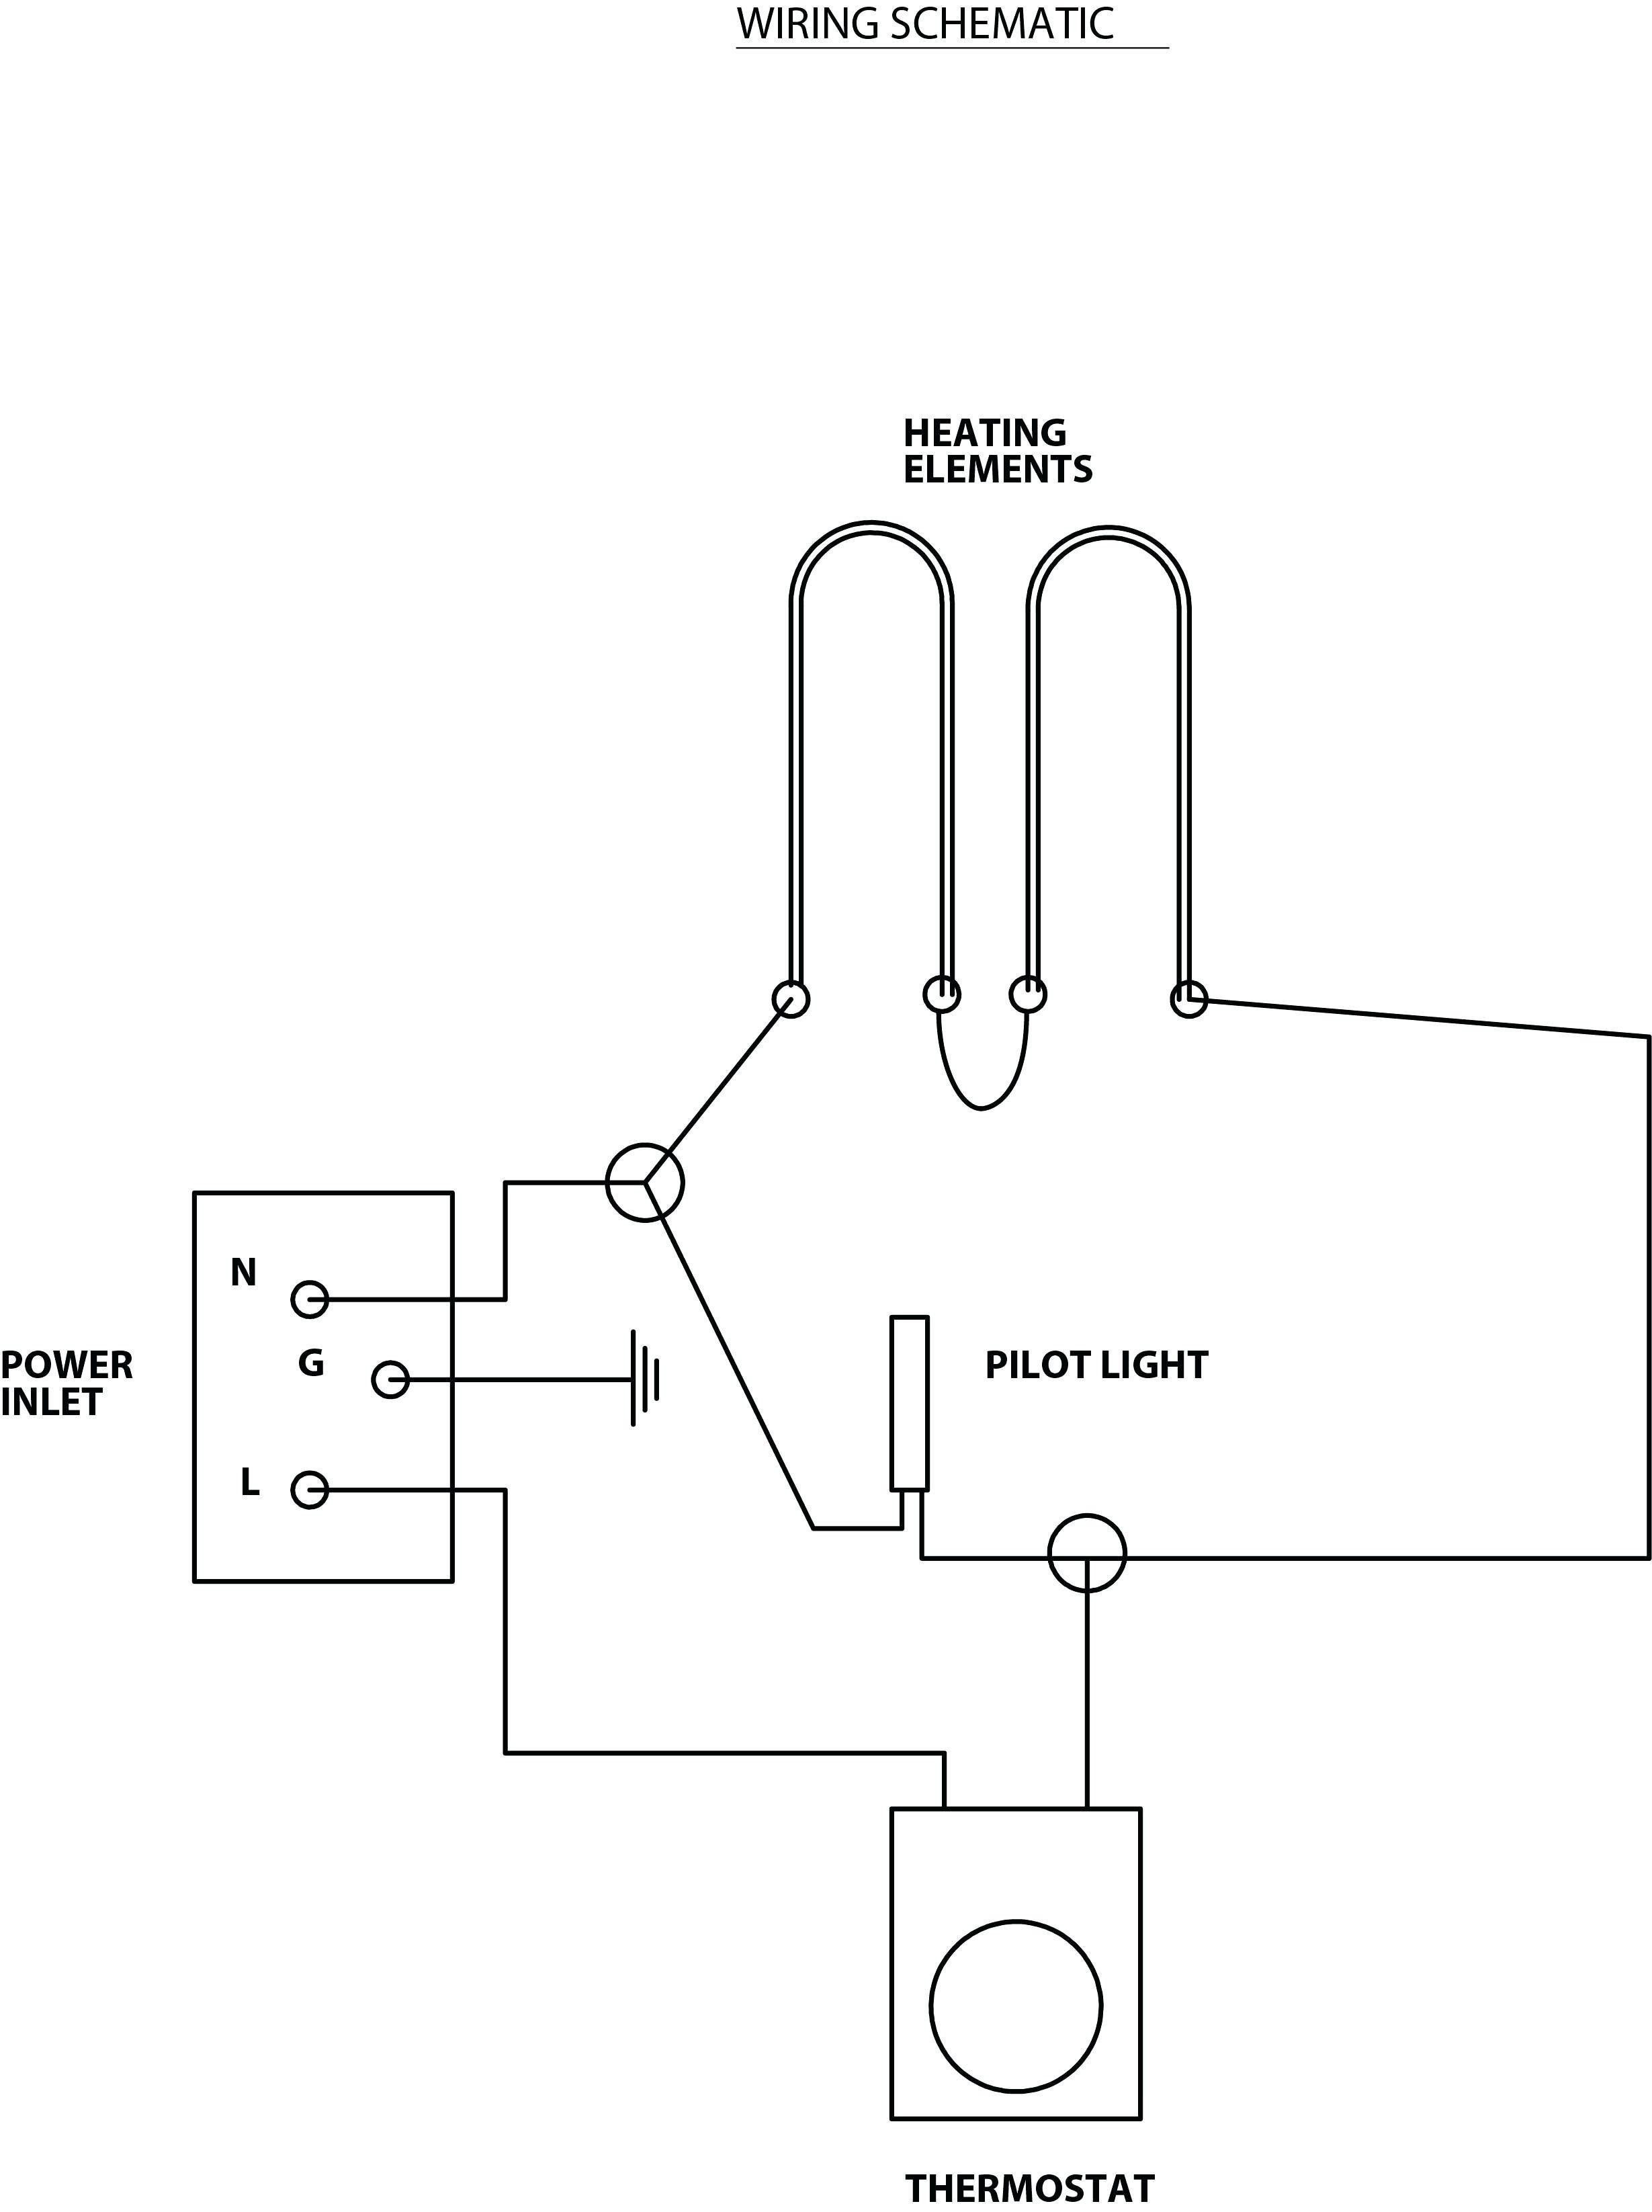 Unique Central Heating Wiring Diagram Uk Baseboard Heater Thermostat Wiring Baseboard Heater Thermostat